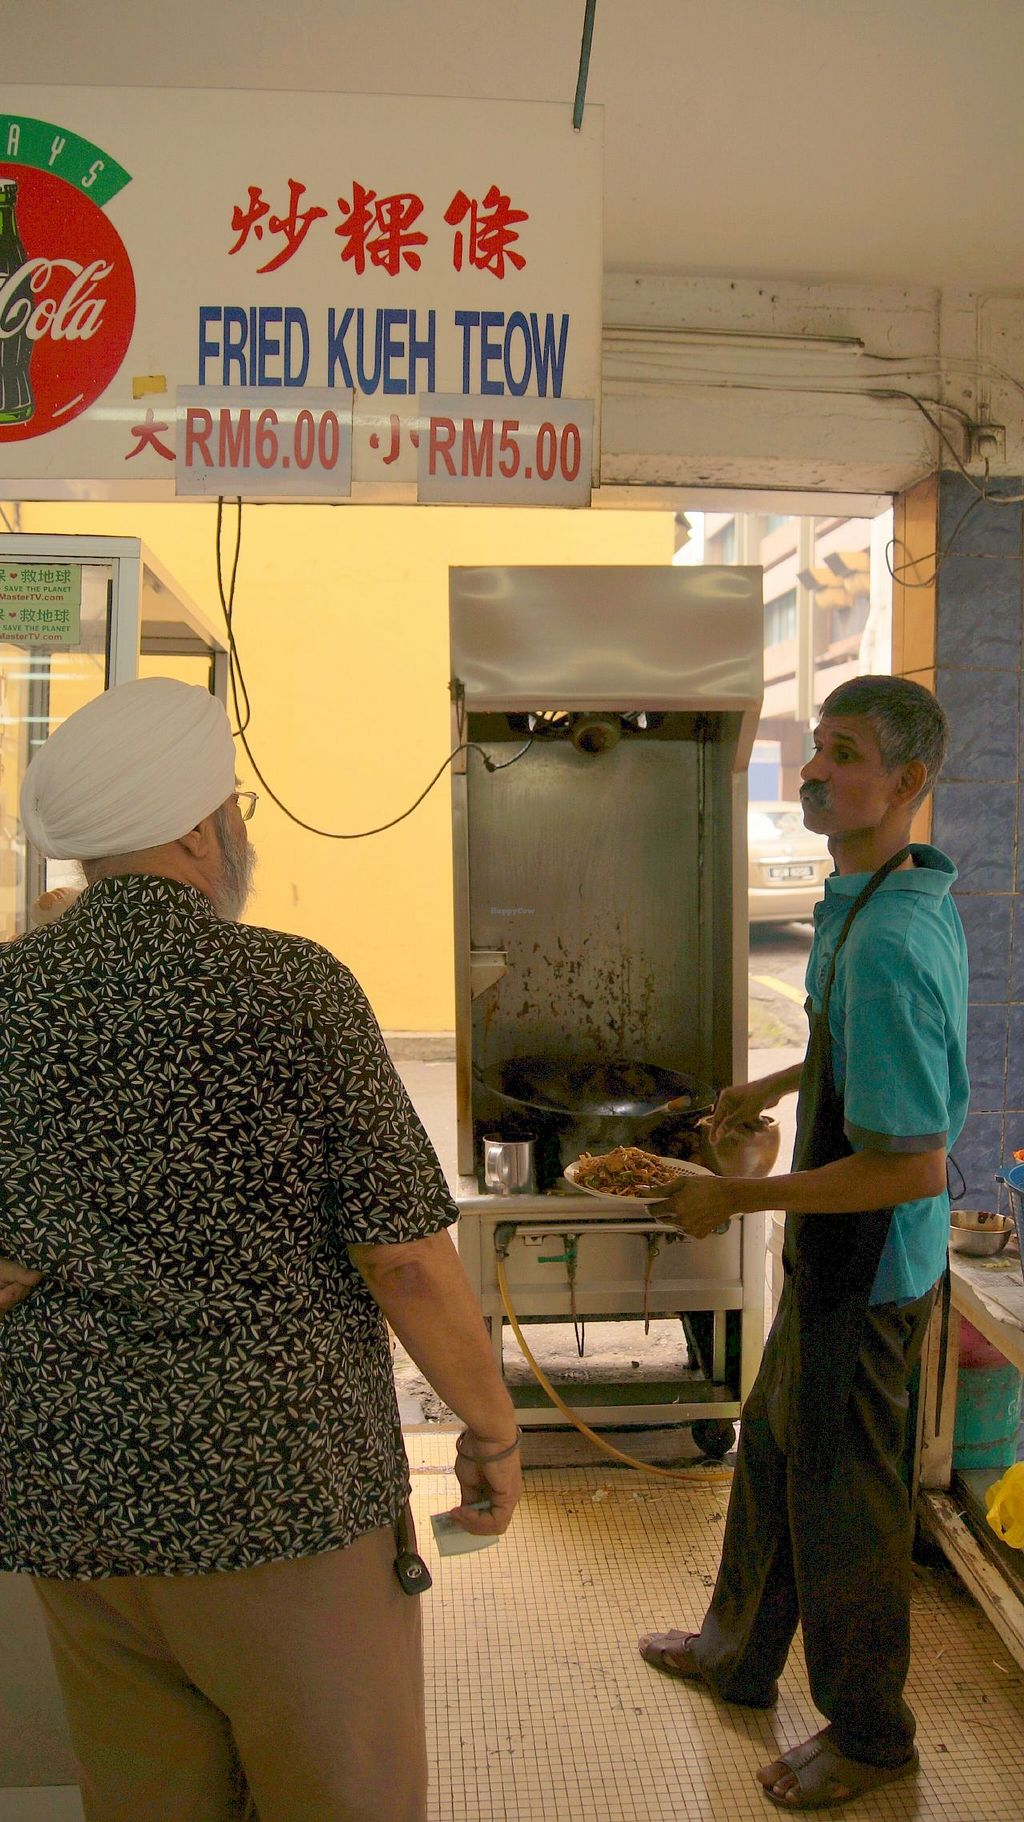 """Photo of Blue Boy Vegetarian Food Centre Stall  by <a href=""""/members/profile/nbhat"""">nbhat</a> <br/>Char Koay Teow preparation <br/> October 11, 2015  - <a href='/contact/abuse/image/6111/121052'>Report</a>"""